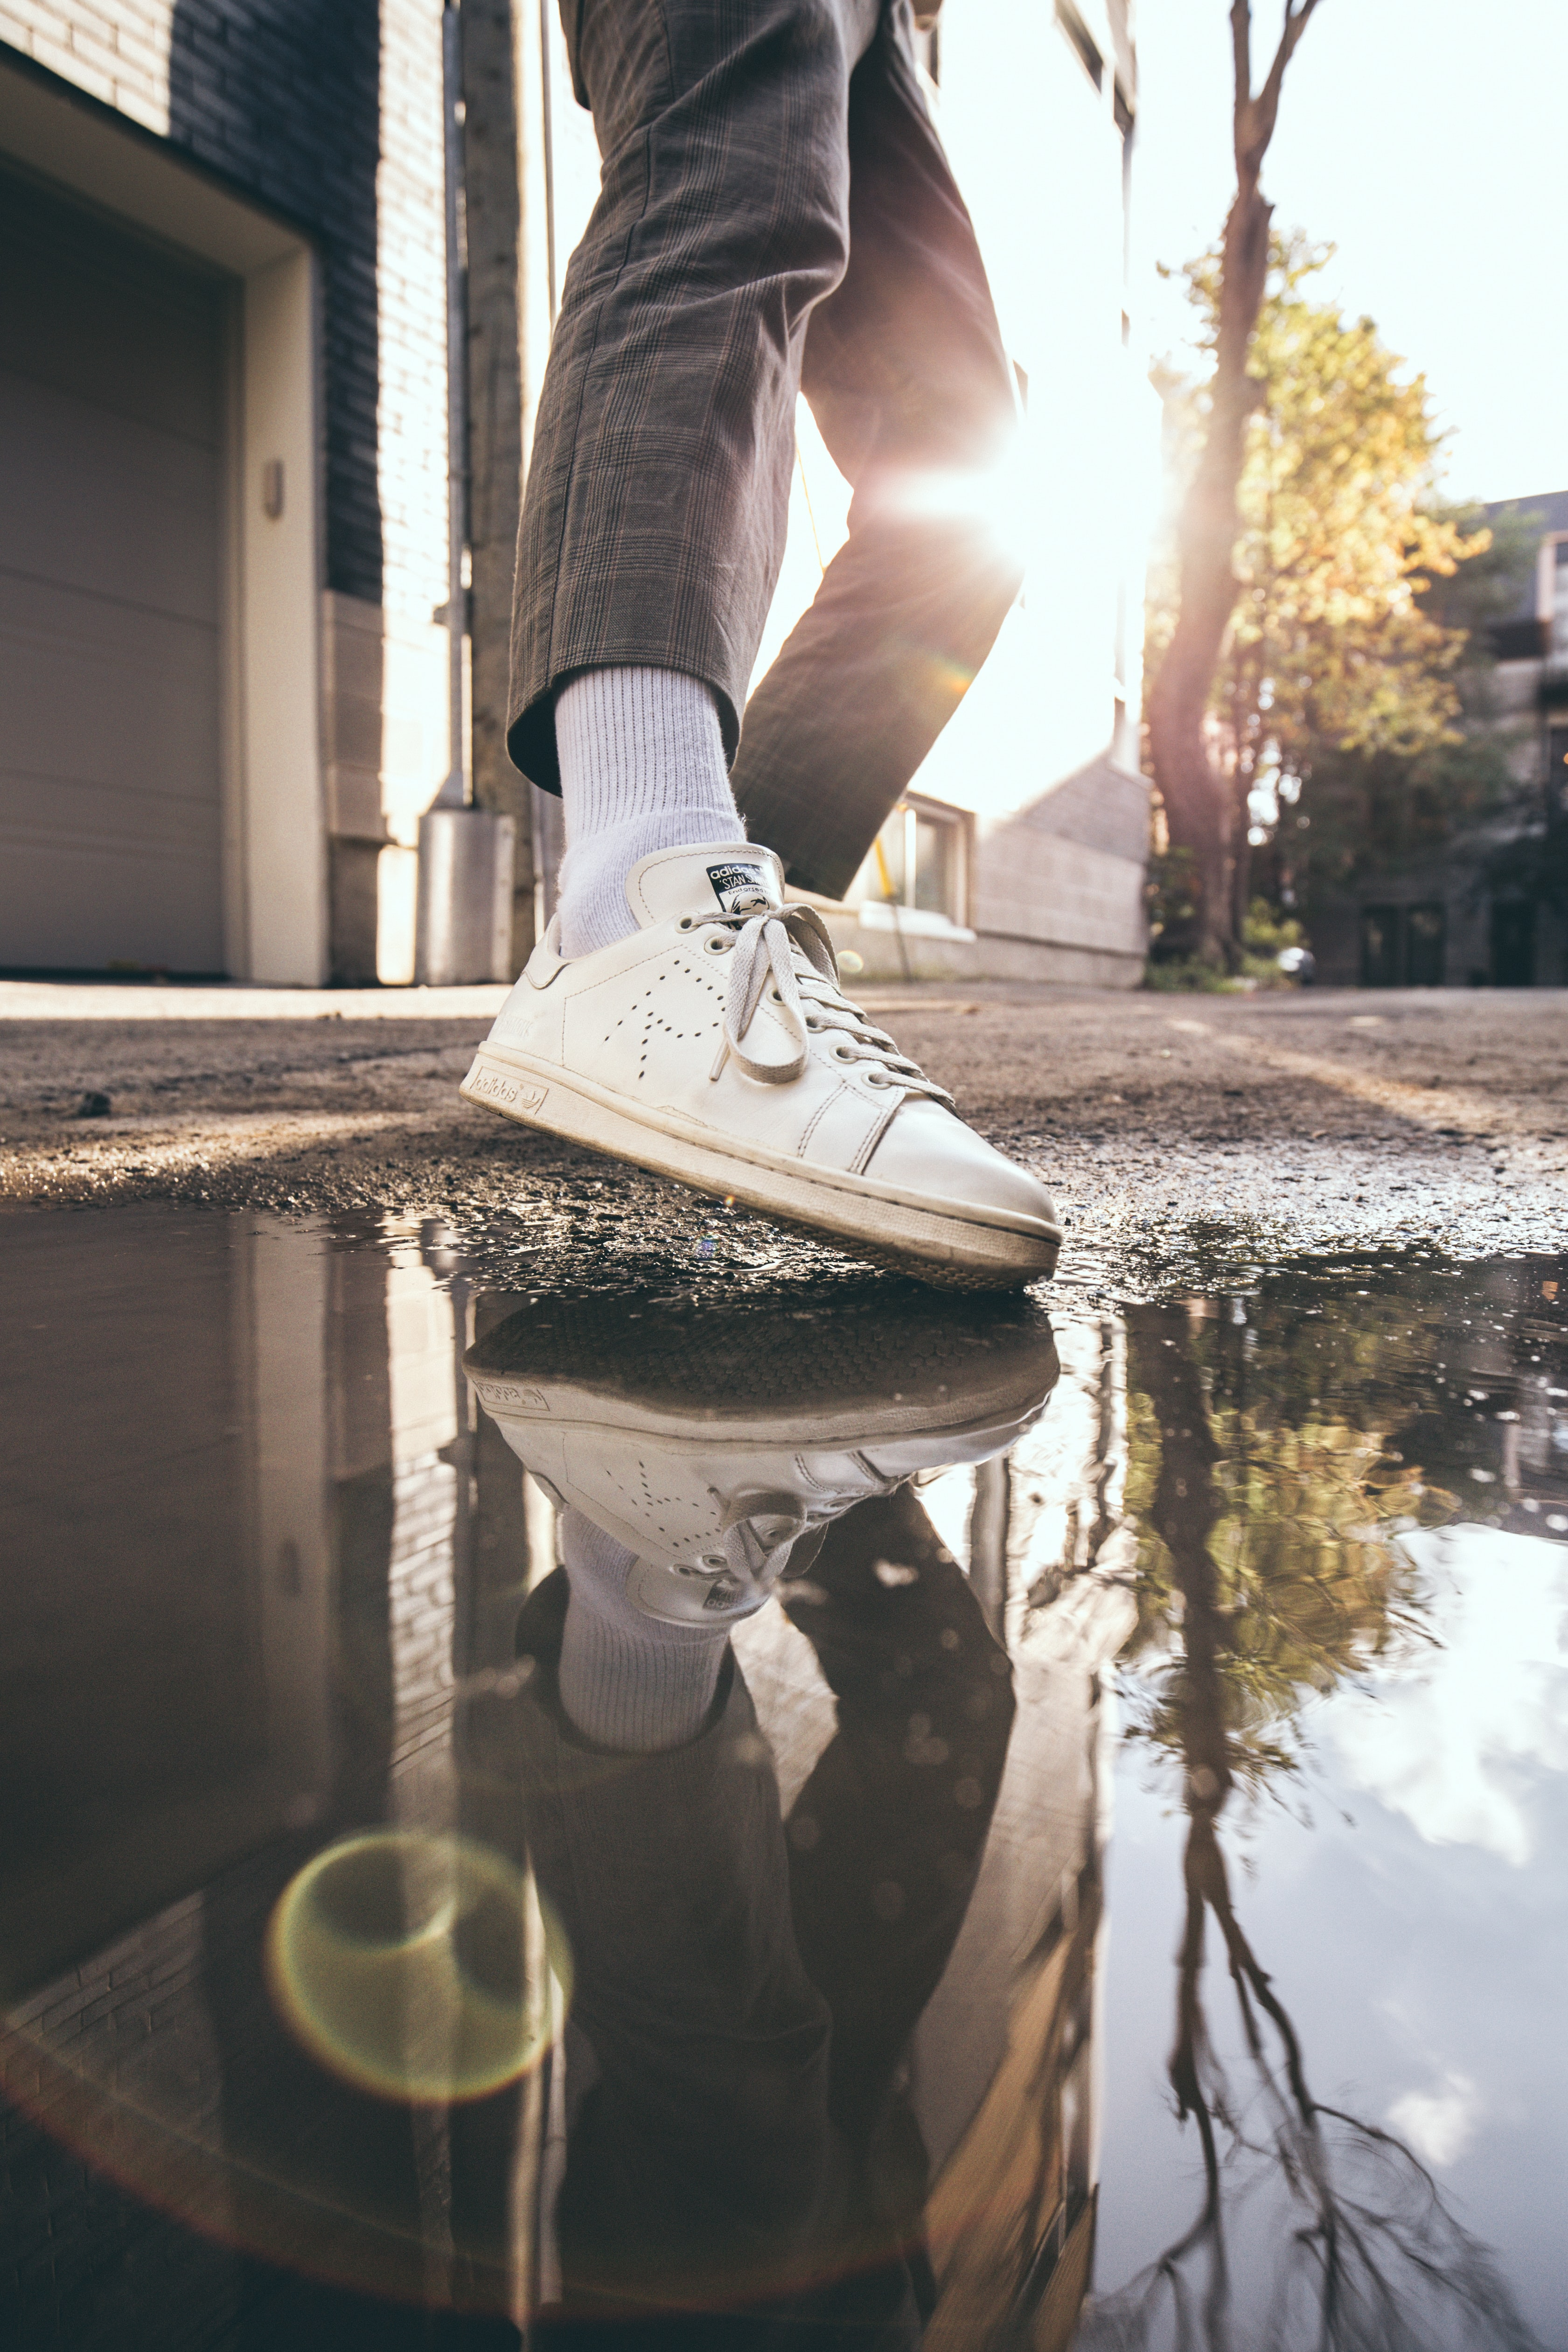 person in black pants and white shoe during daytime